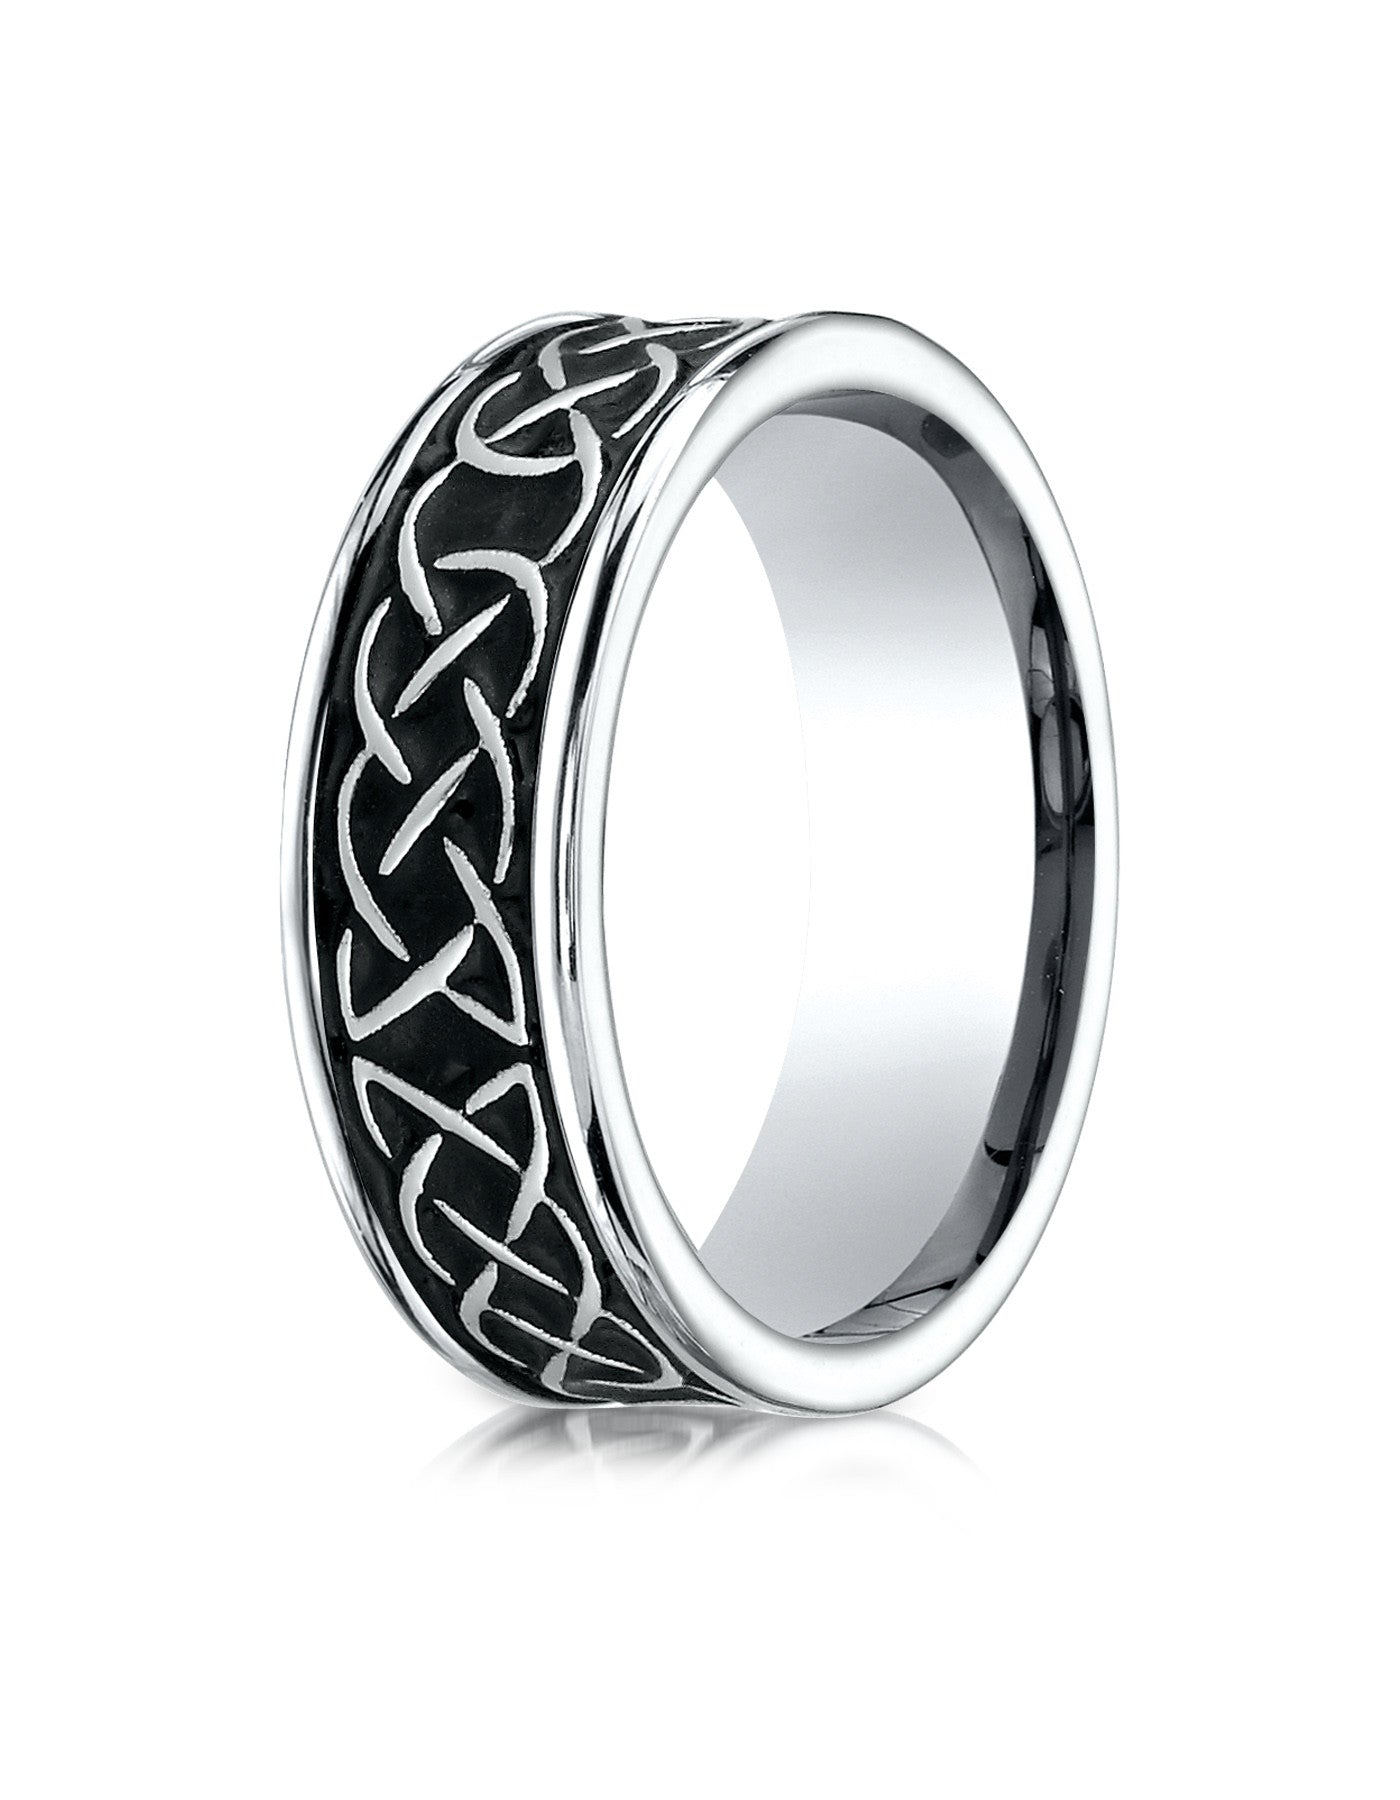 dundee cobalt celtic knot wedding band for men by benchmark - Cobalt Wedding Rings